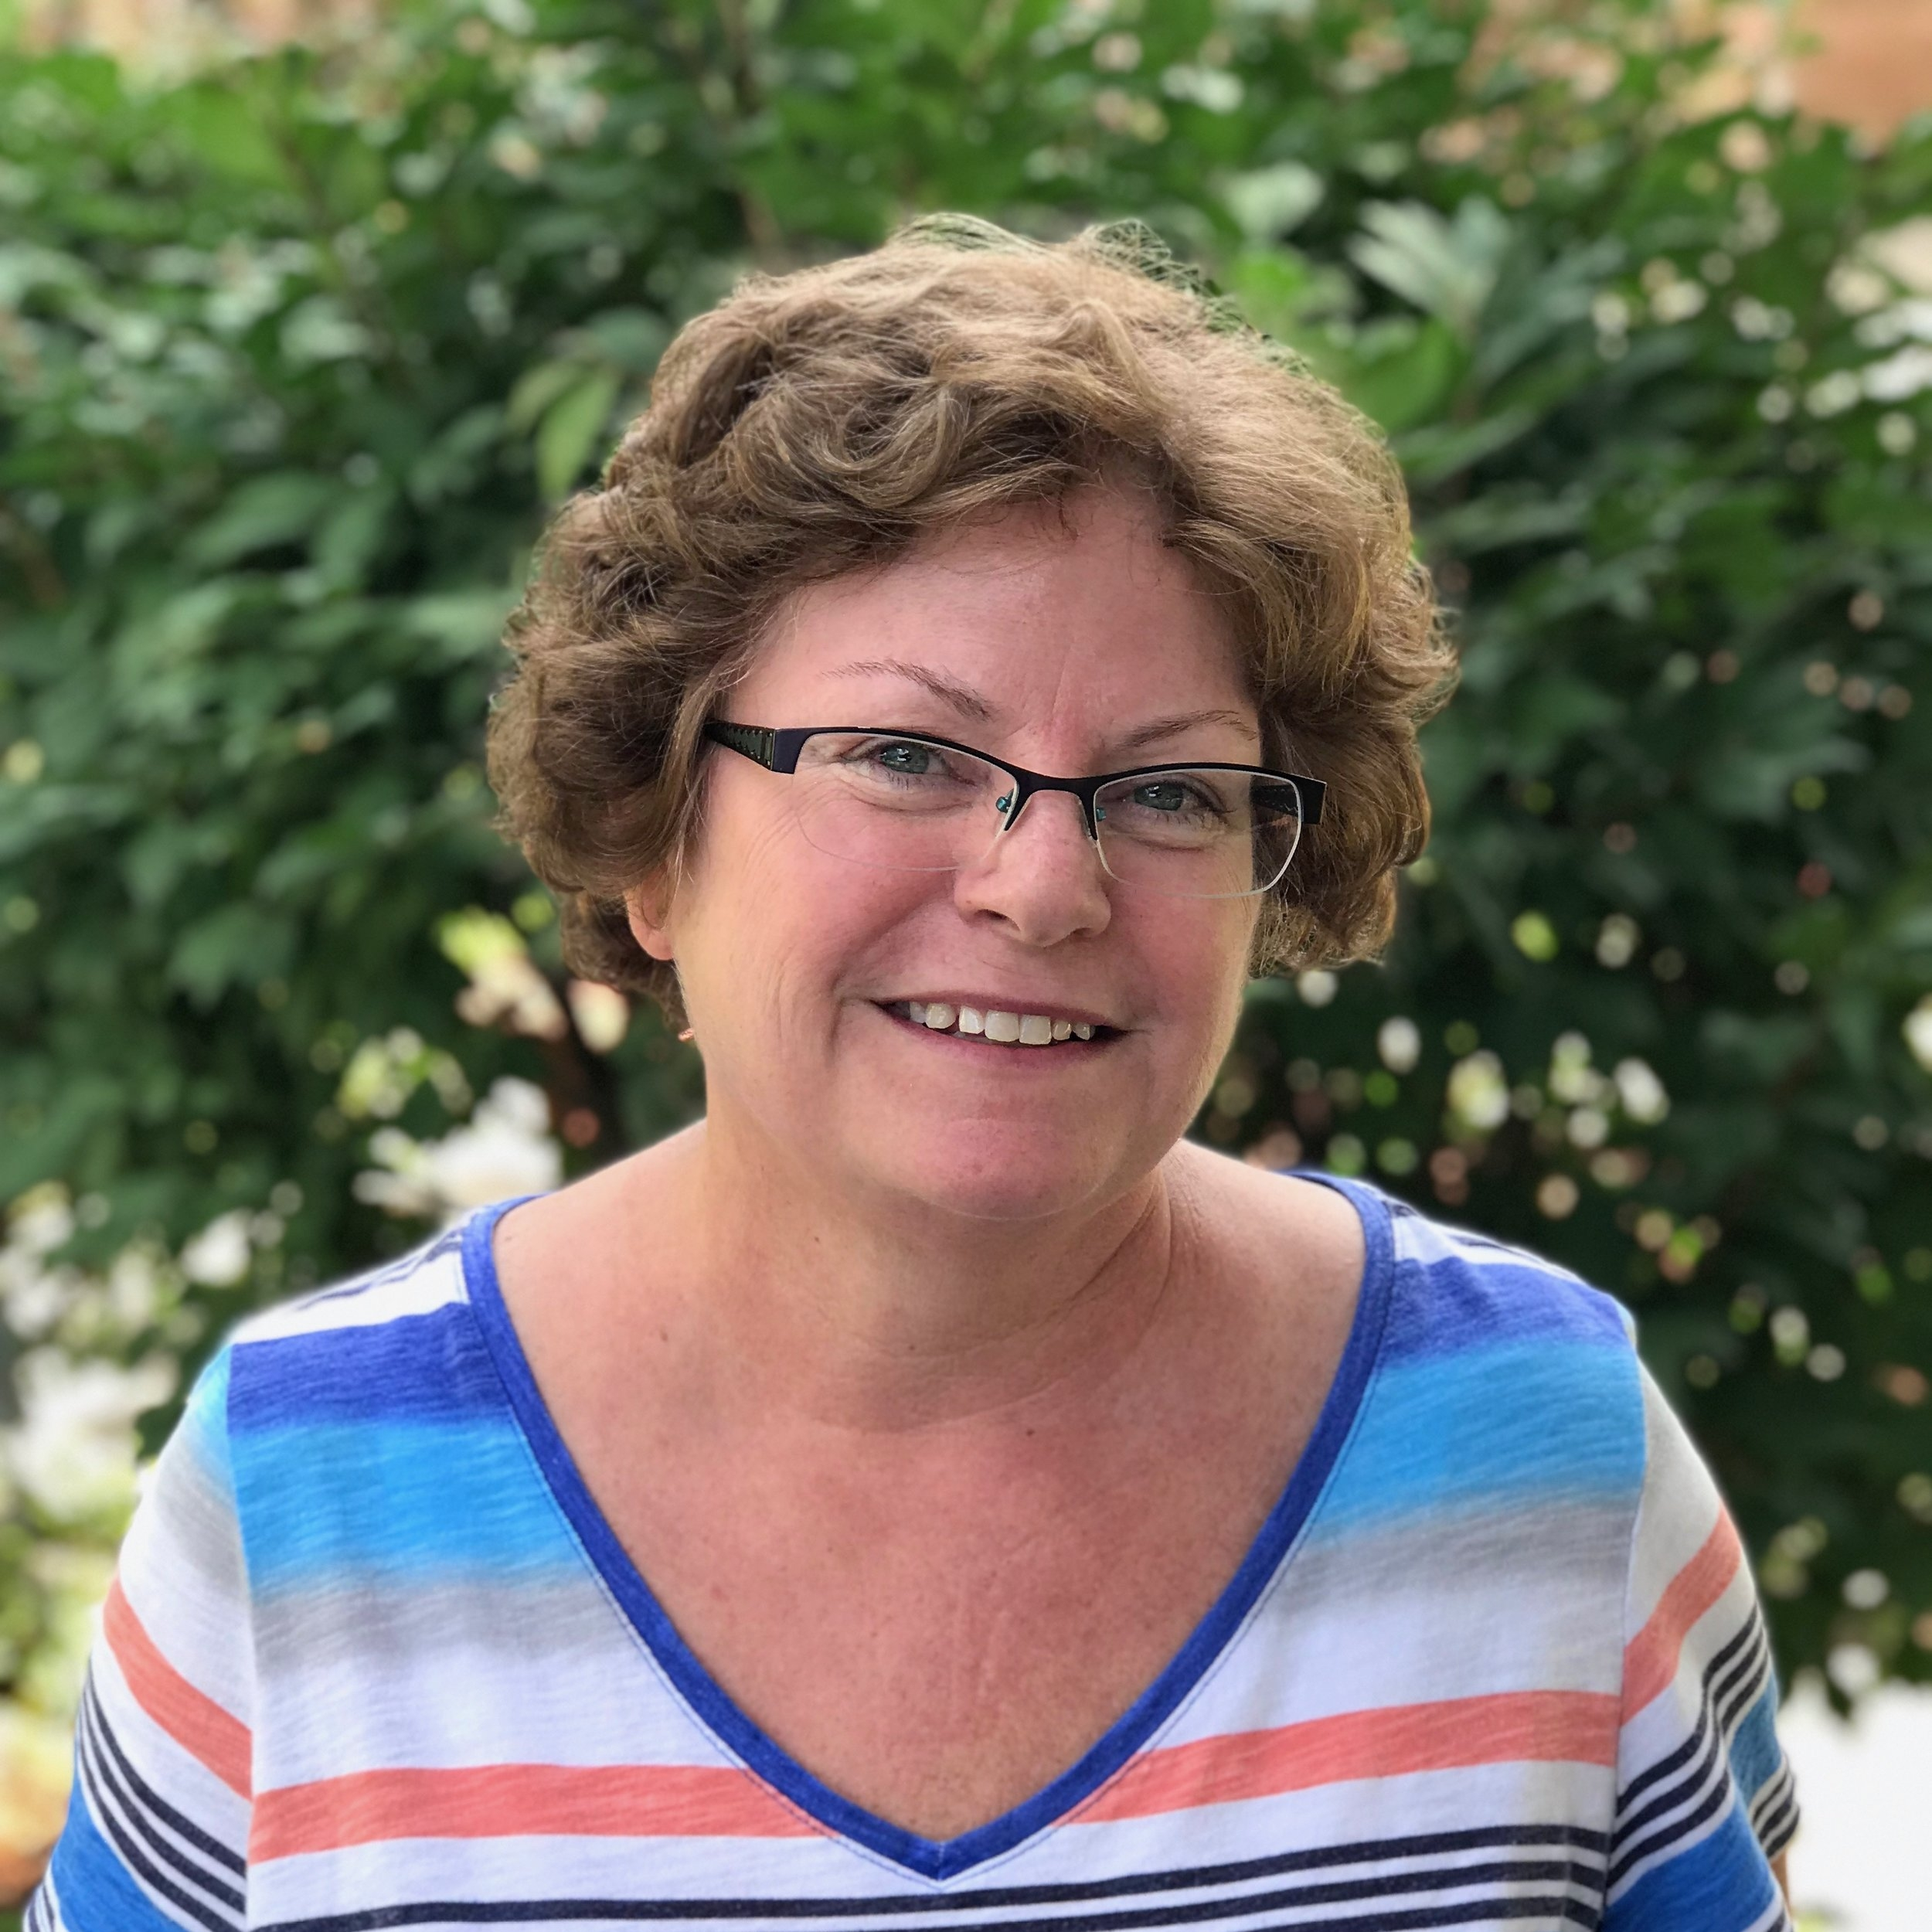 Mrs. Ruth Giefer -5th Grade Teacher  rgiefer@stjeromeschool.org  I'm so excited to be the 5th grade classroom teacher this year. This is my 6th year here at St. Jerome. I have been teaching for 20 years in a variety of grades in Minnesota including 10 years in Southern California. I also served as assistant principal for 5 years at St. Hyacinth Academy in San Jacinto, CA. I graduated with a B.S. in Elementary Education from the University of Wisconsin, River Falls, and went on to earn my Master's Degree in Reading Instruction and Curriculum Development. I'm looking forward to a great year.